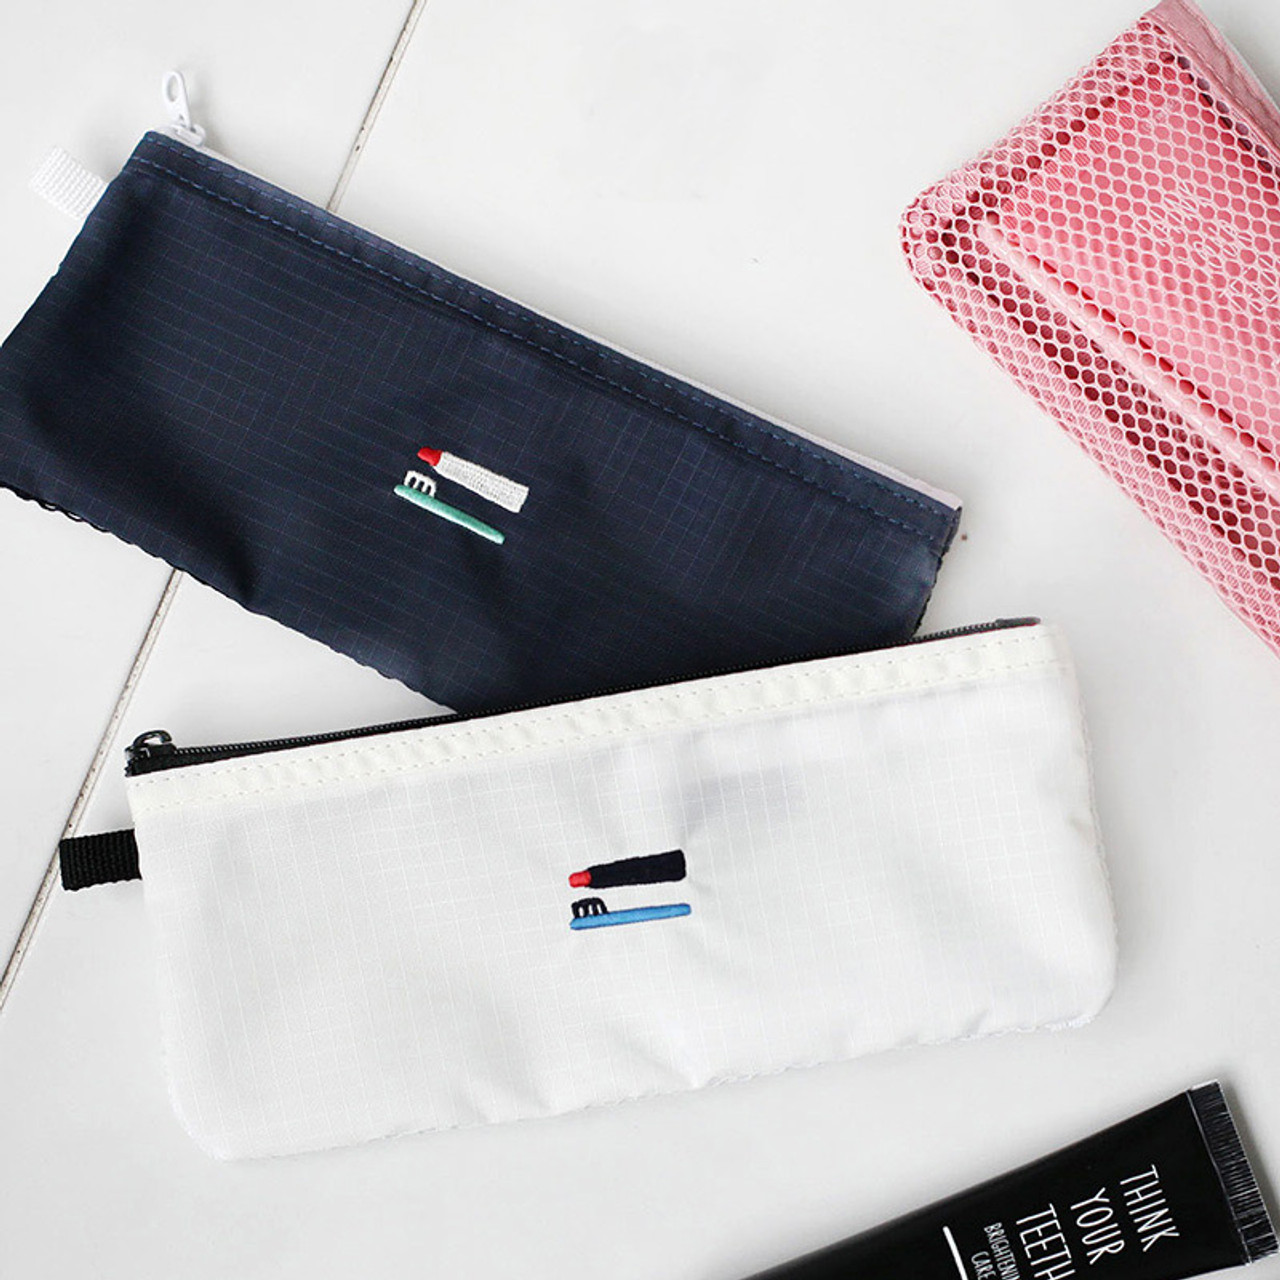 2nul Travel Toothbrush Slim Zipper Mesh Pouch Fallindesign